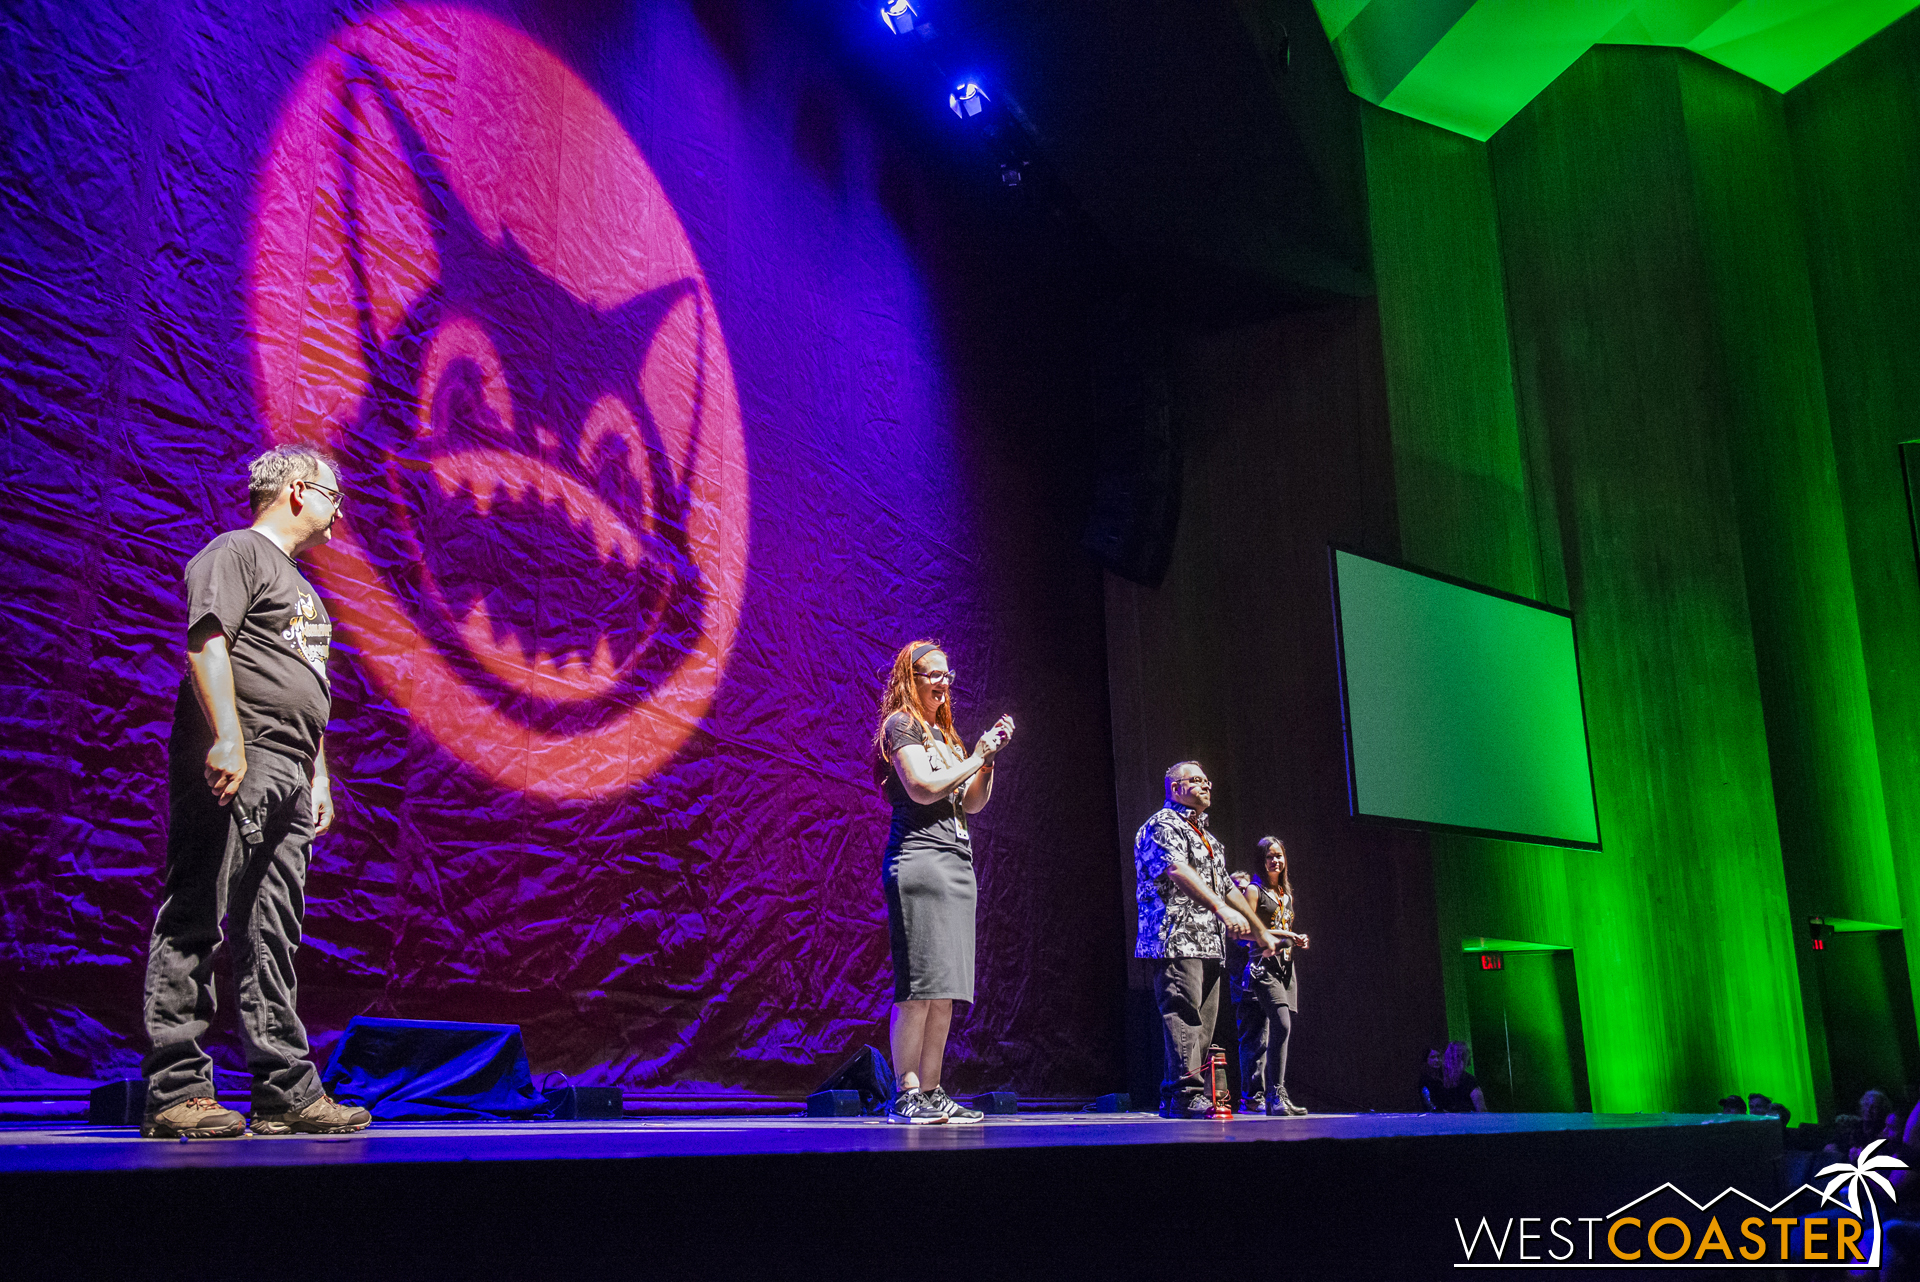 The Midsummer Scream creative team gives opening remarks before making way for the Tower of Terror talk.